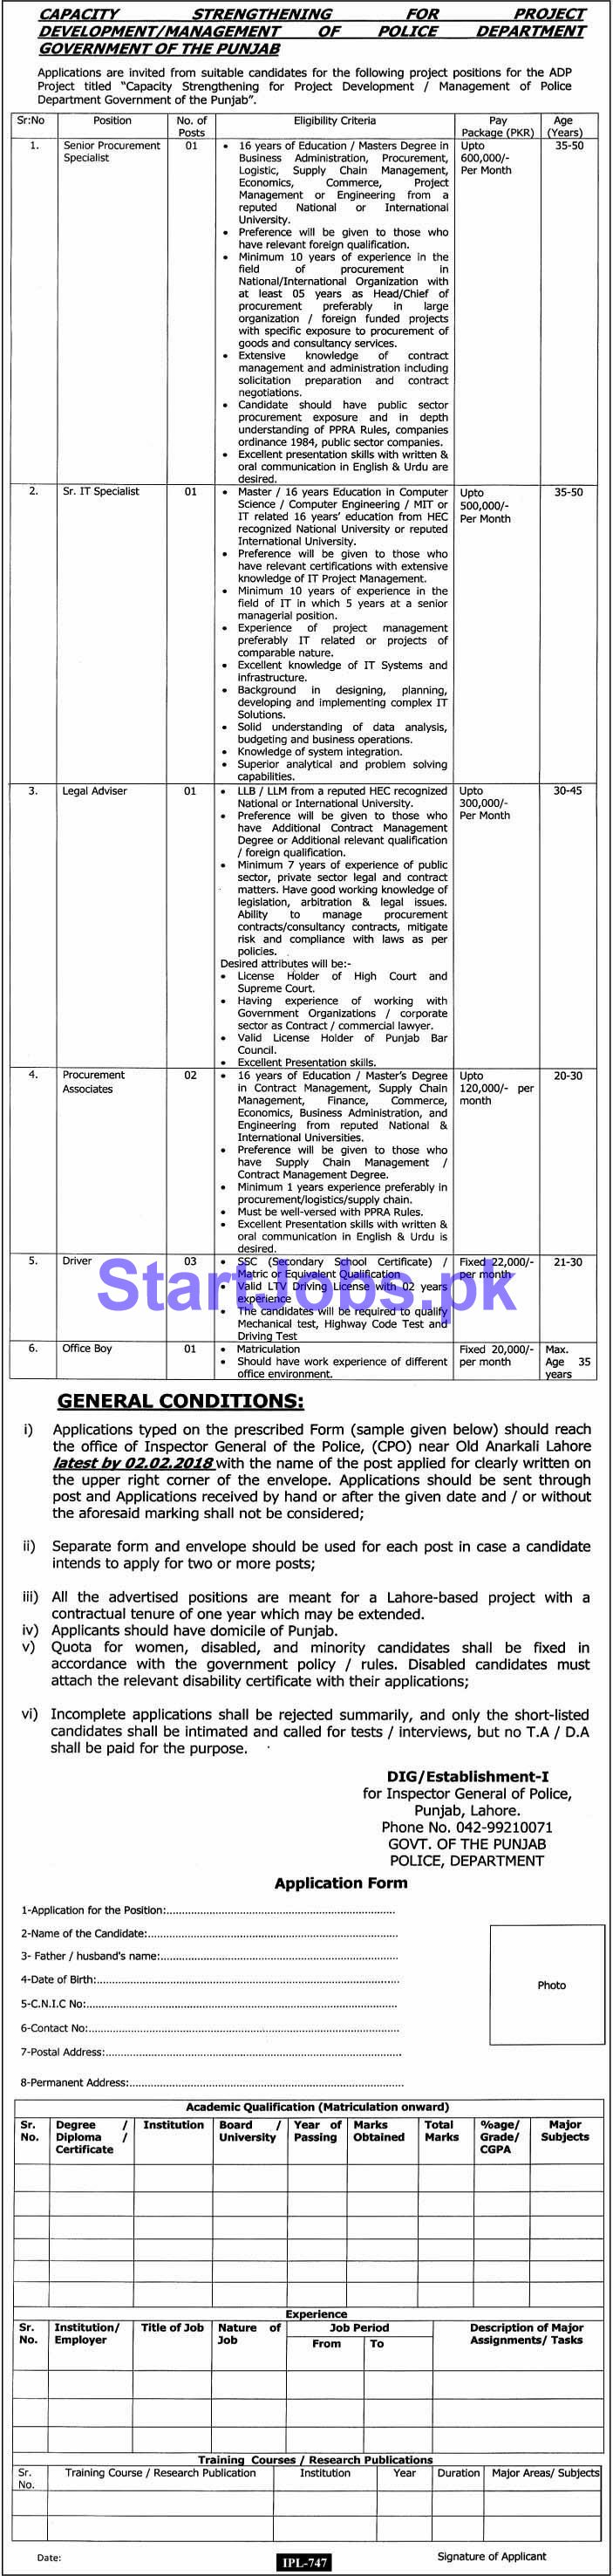 Punjab Police Jobs 2018 For Officer, IT Specialist, Advisor & Others